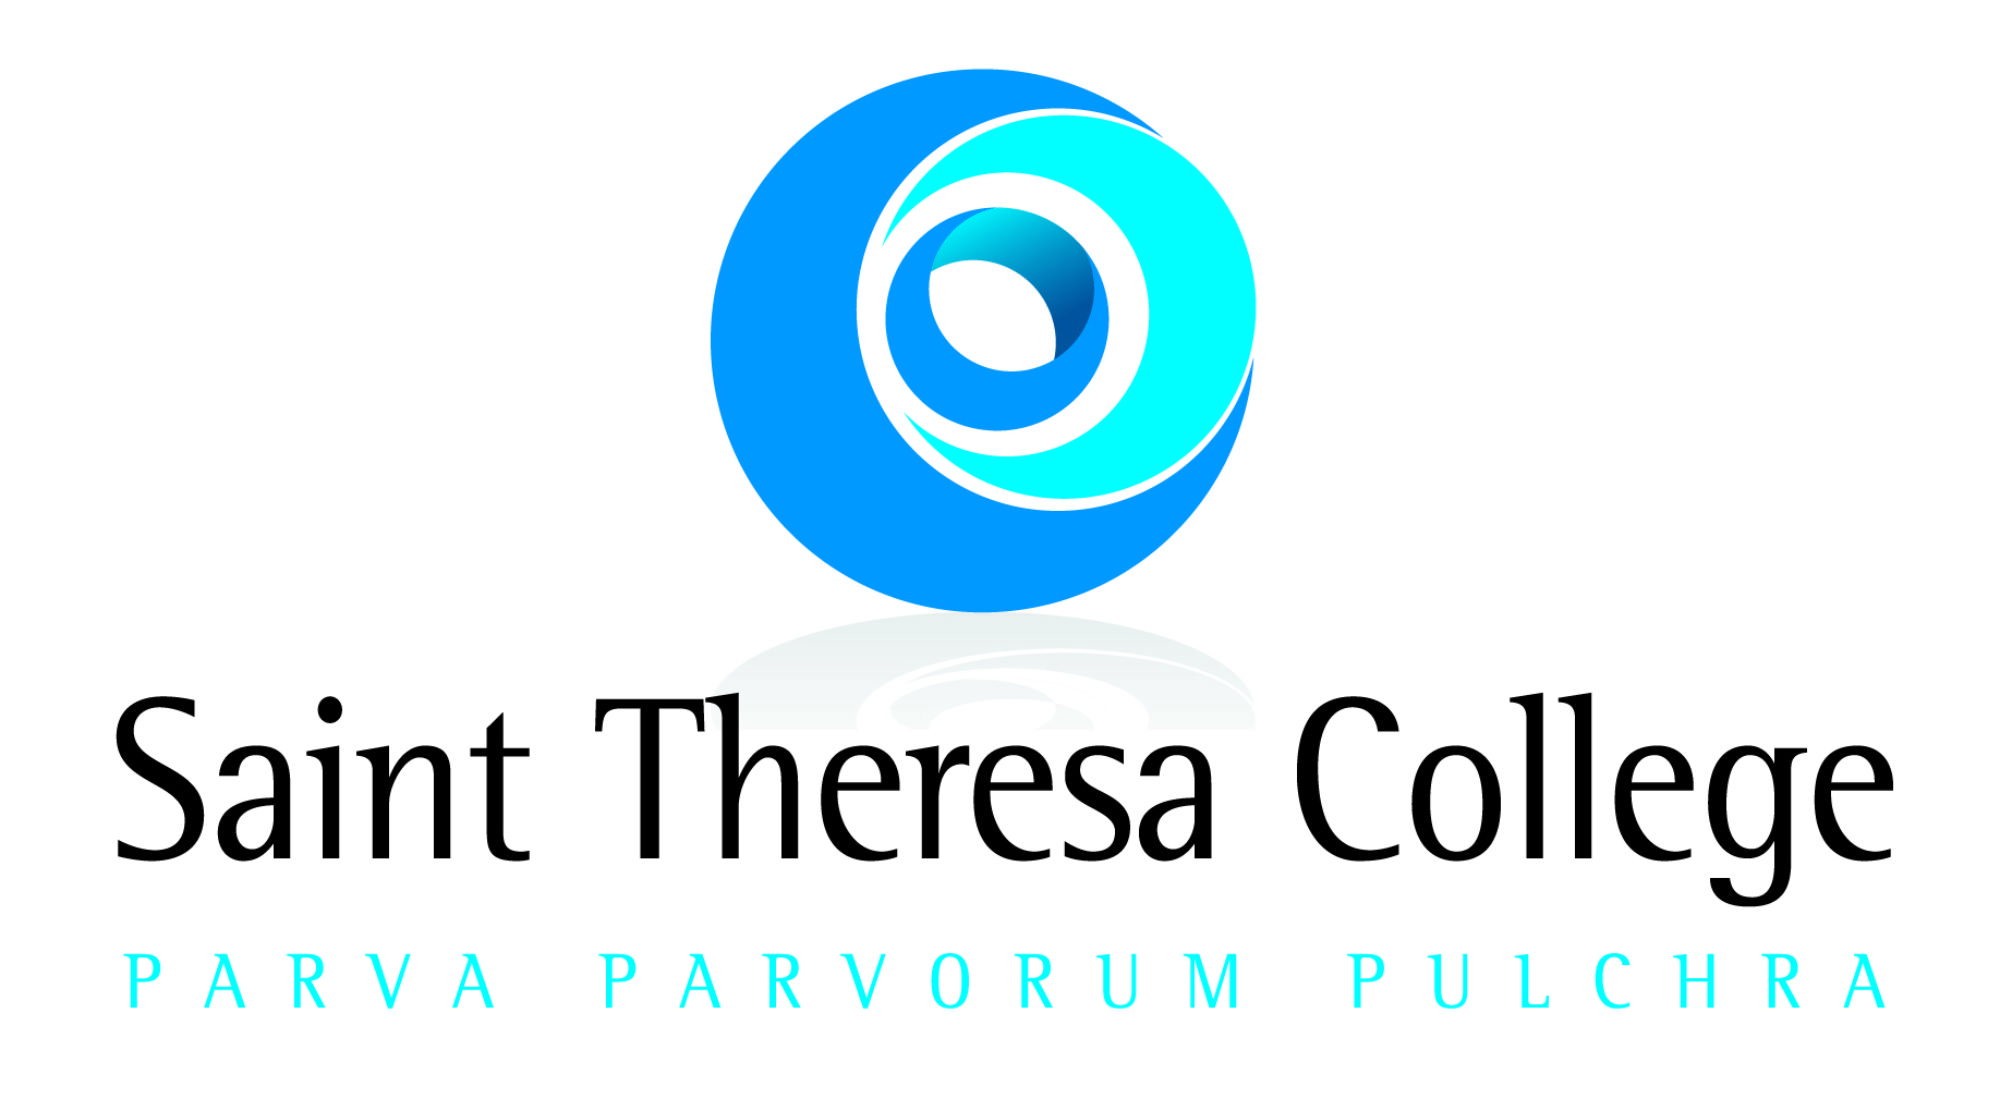 St Theresa College